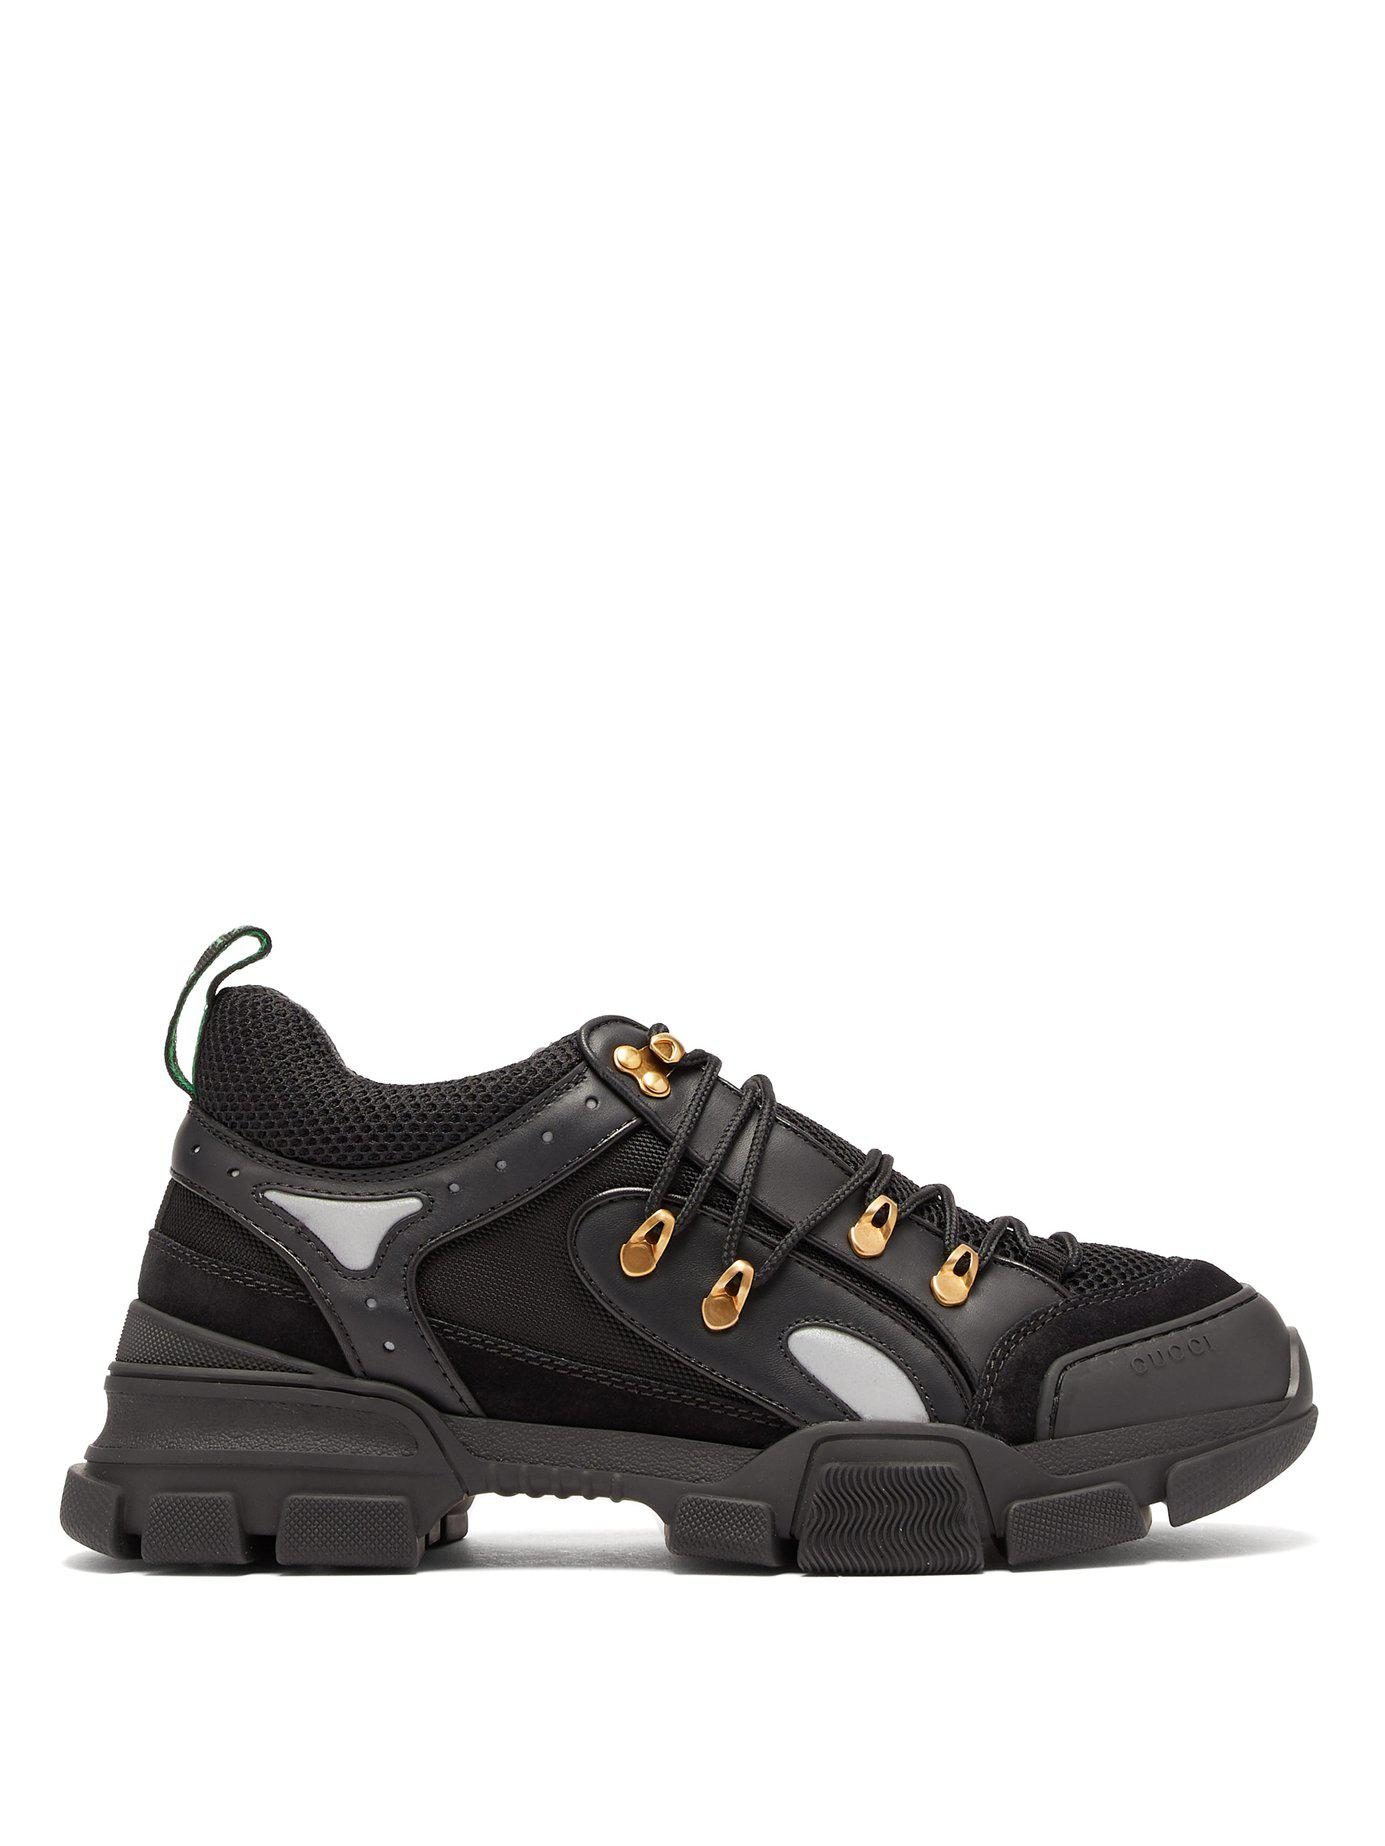 fdedcf7d82525 Lyst - Gucci Flashtrek Leather Trainers in Black for Men